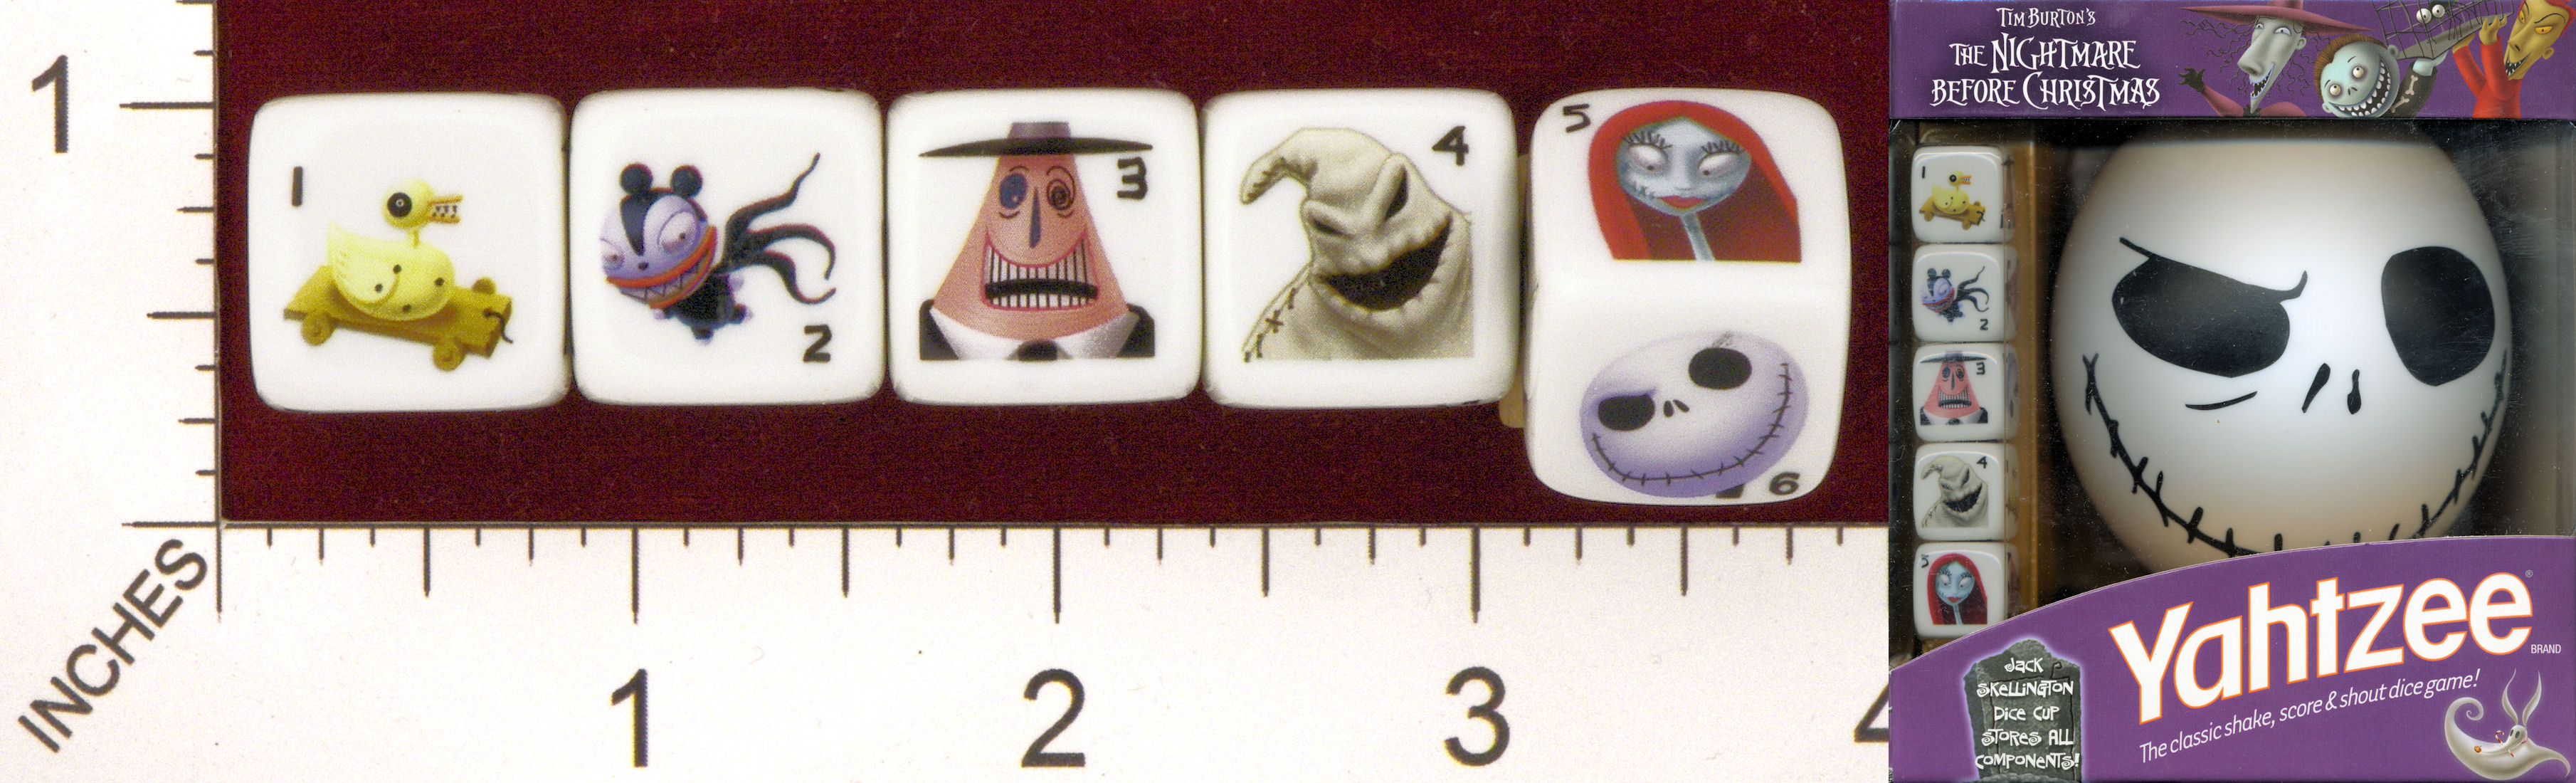 MINT21_USAOPOLY_TIM_BURTONS_NIGHTMARE_BEFORE_CHRISTMAS_YAHTZEE.jpg